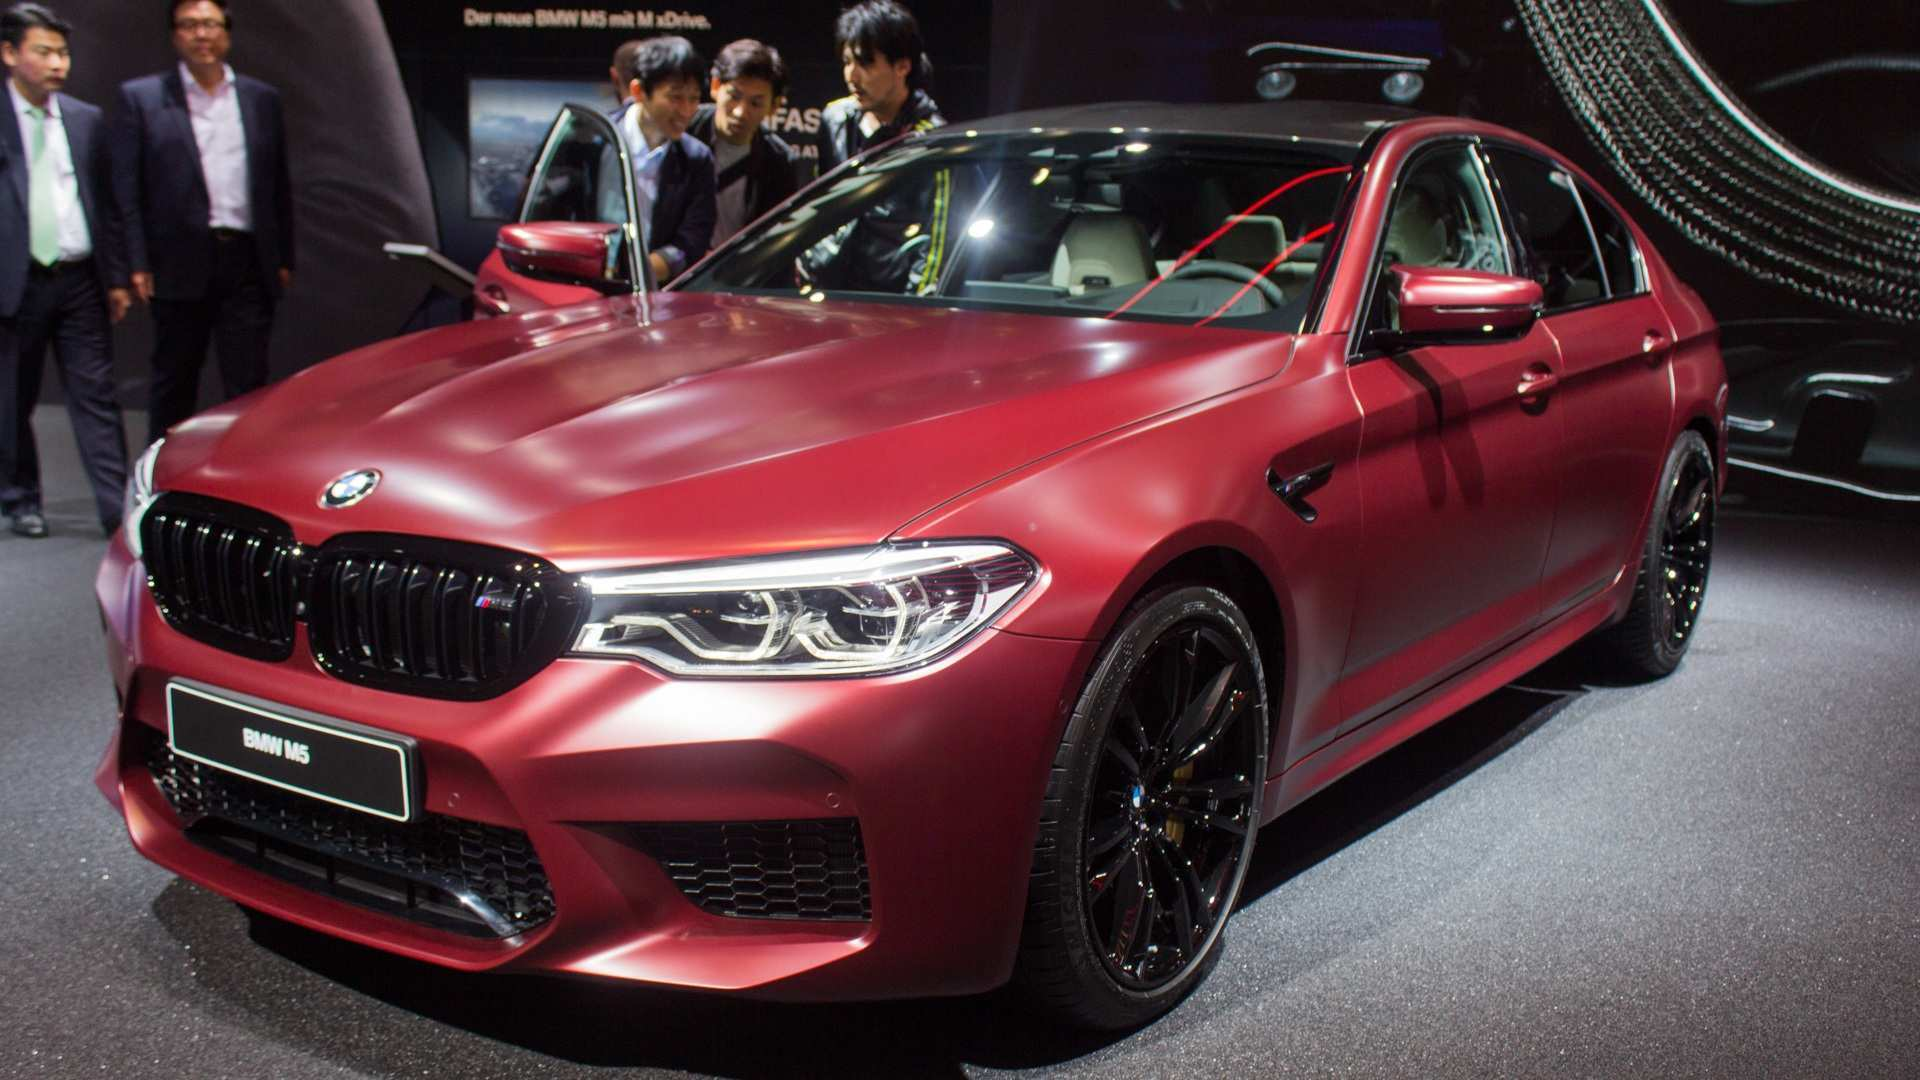 51 New 2020 BMW M5 Specs and Review for 2020 BMW M5